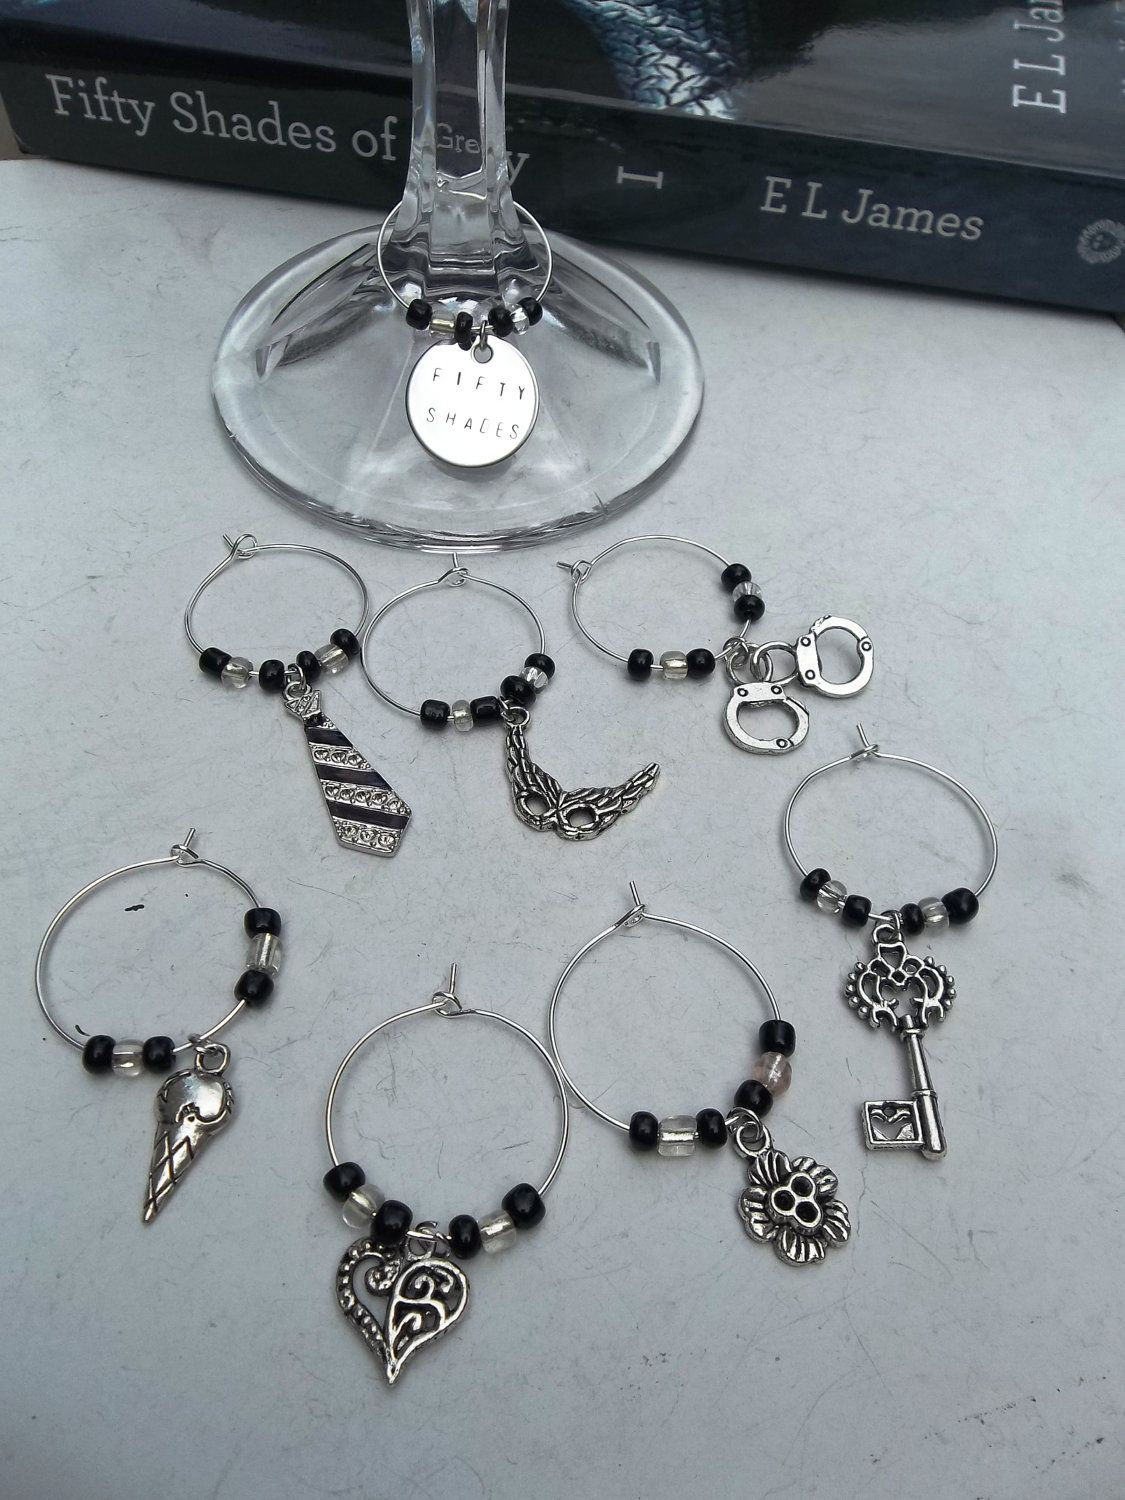 50 Shades of Grey wine glass charms